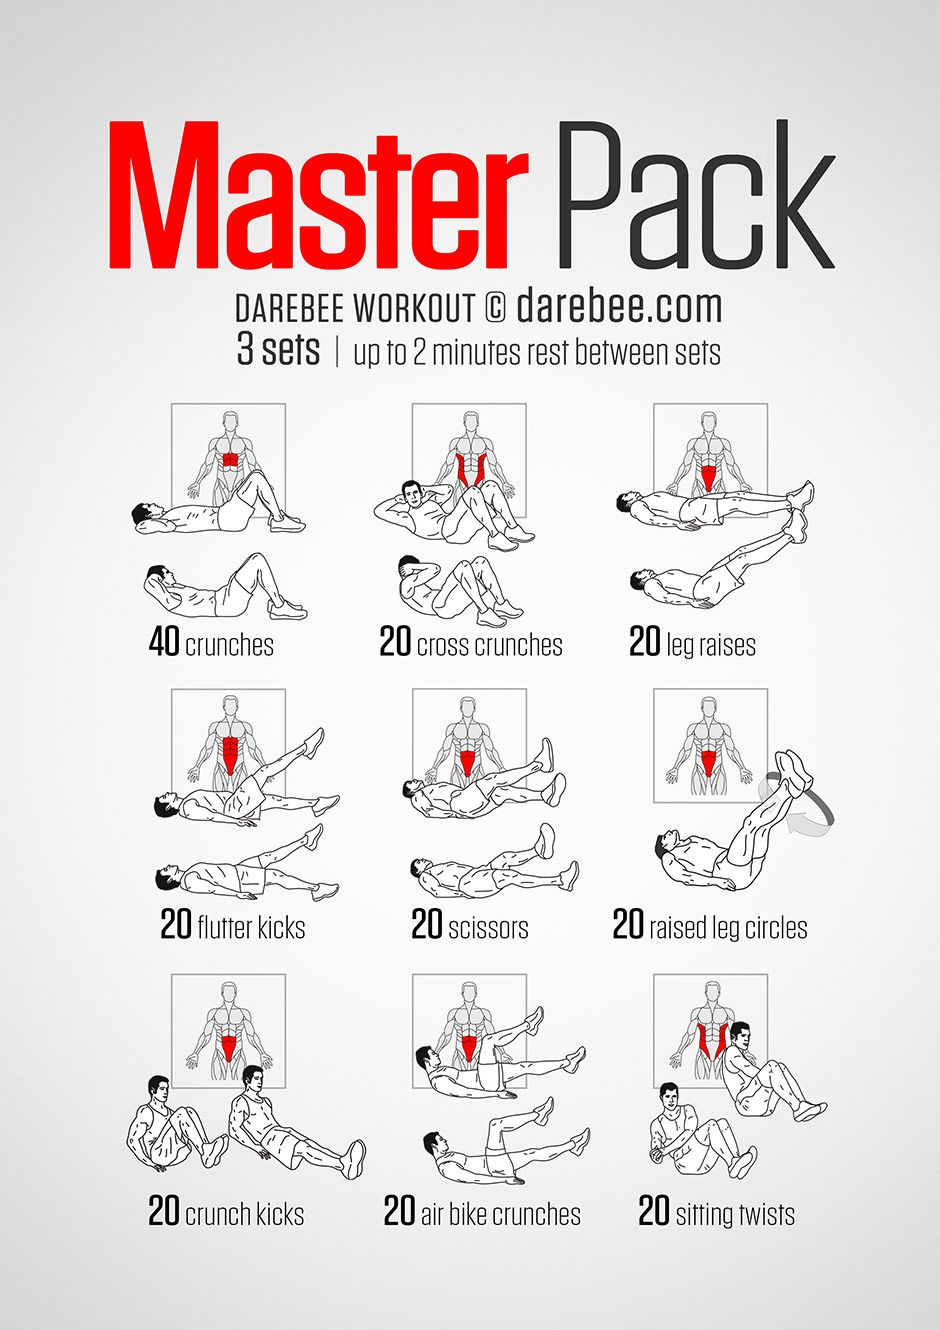 Masterpack workout workout pinterest workout exercises and gym masterpack workout fandeluxe Image collections